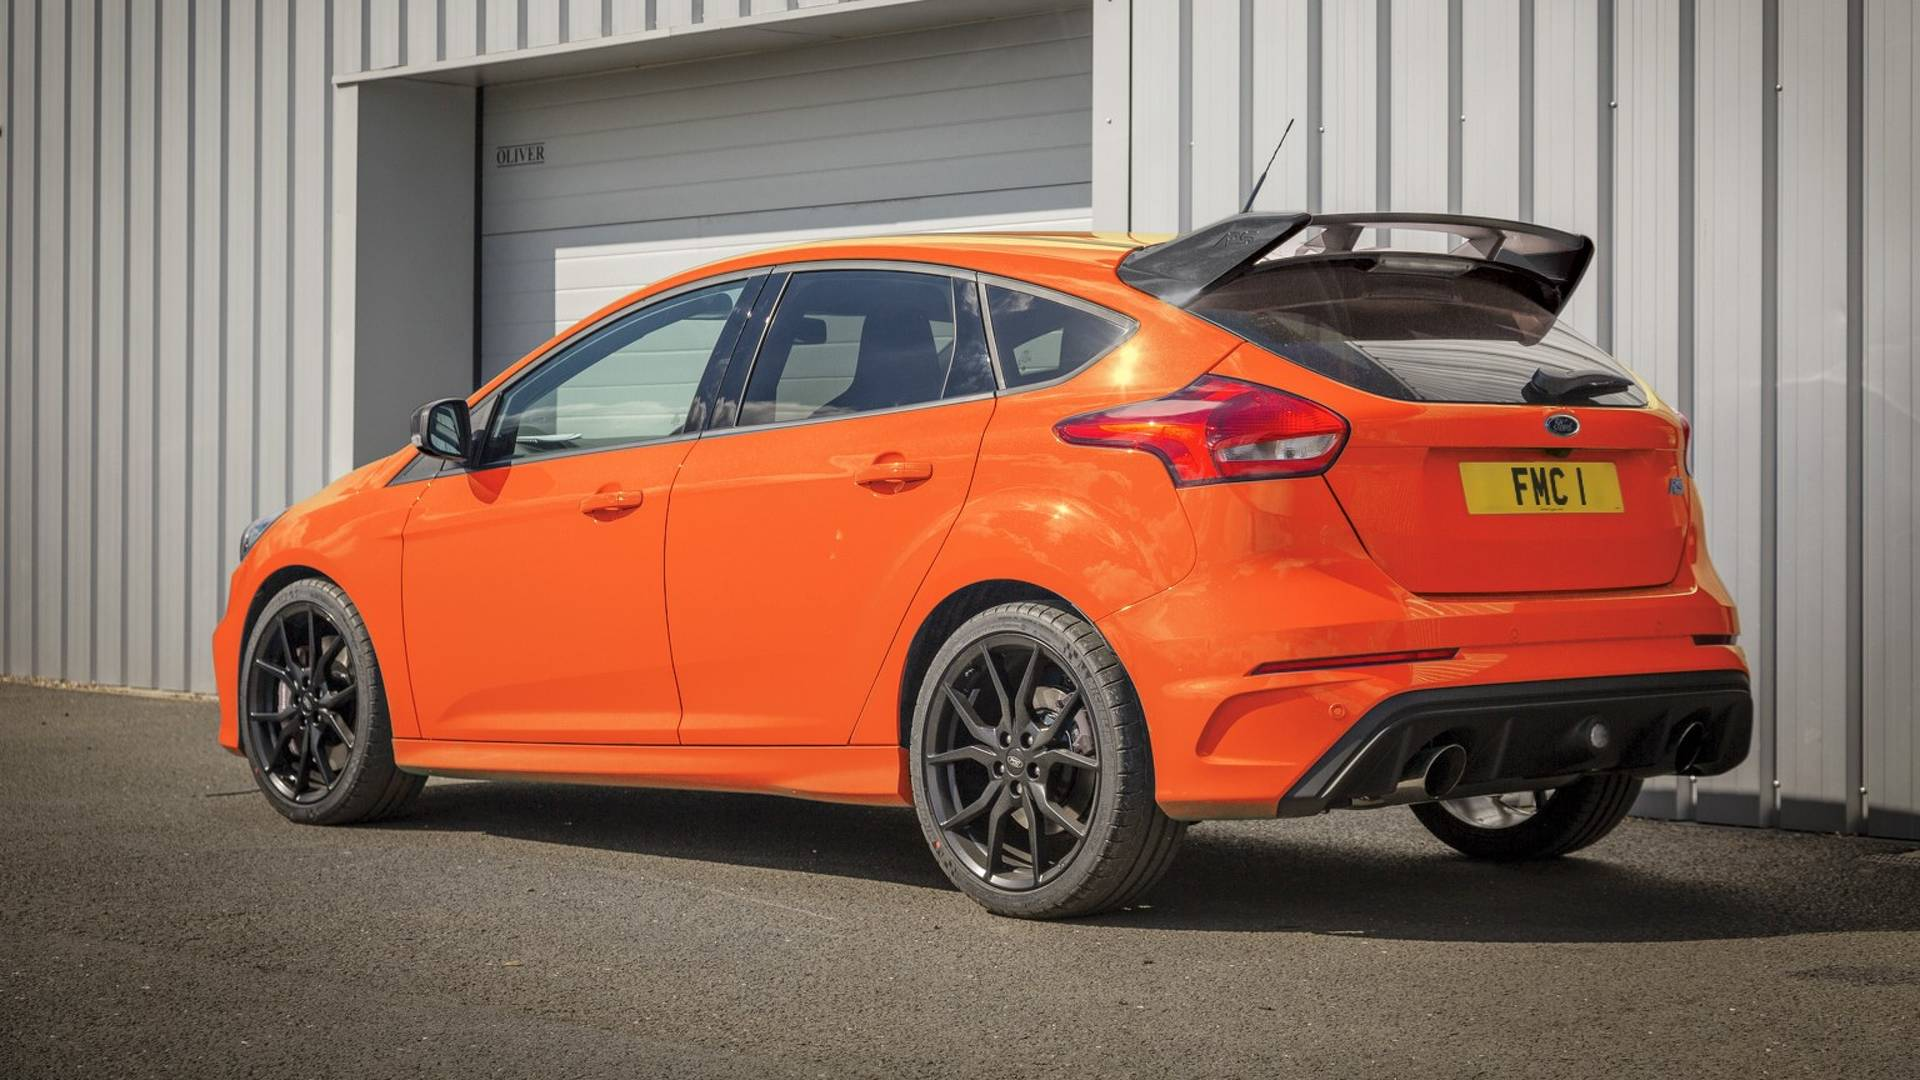 Ford Escape 2014 Custom >> 2018 Ford Focus RS Heritage Edition Is An Orange Swan Song With 375 PS - autoevolution